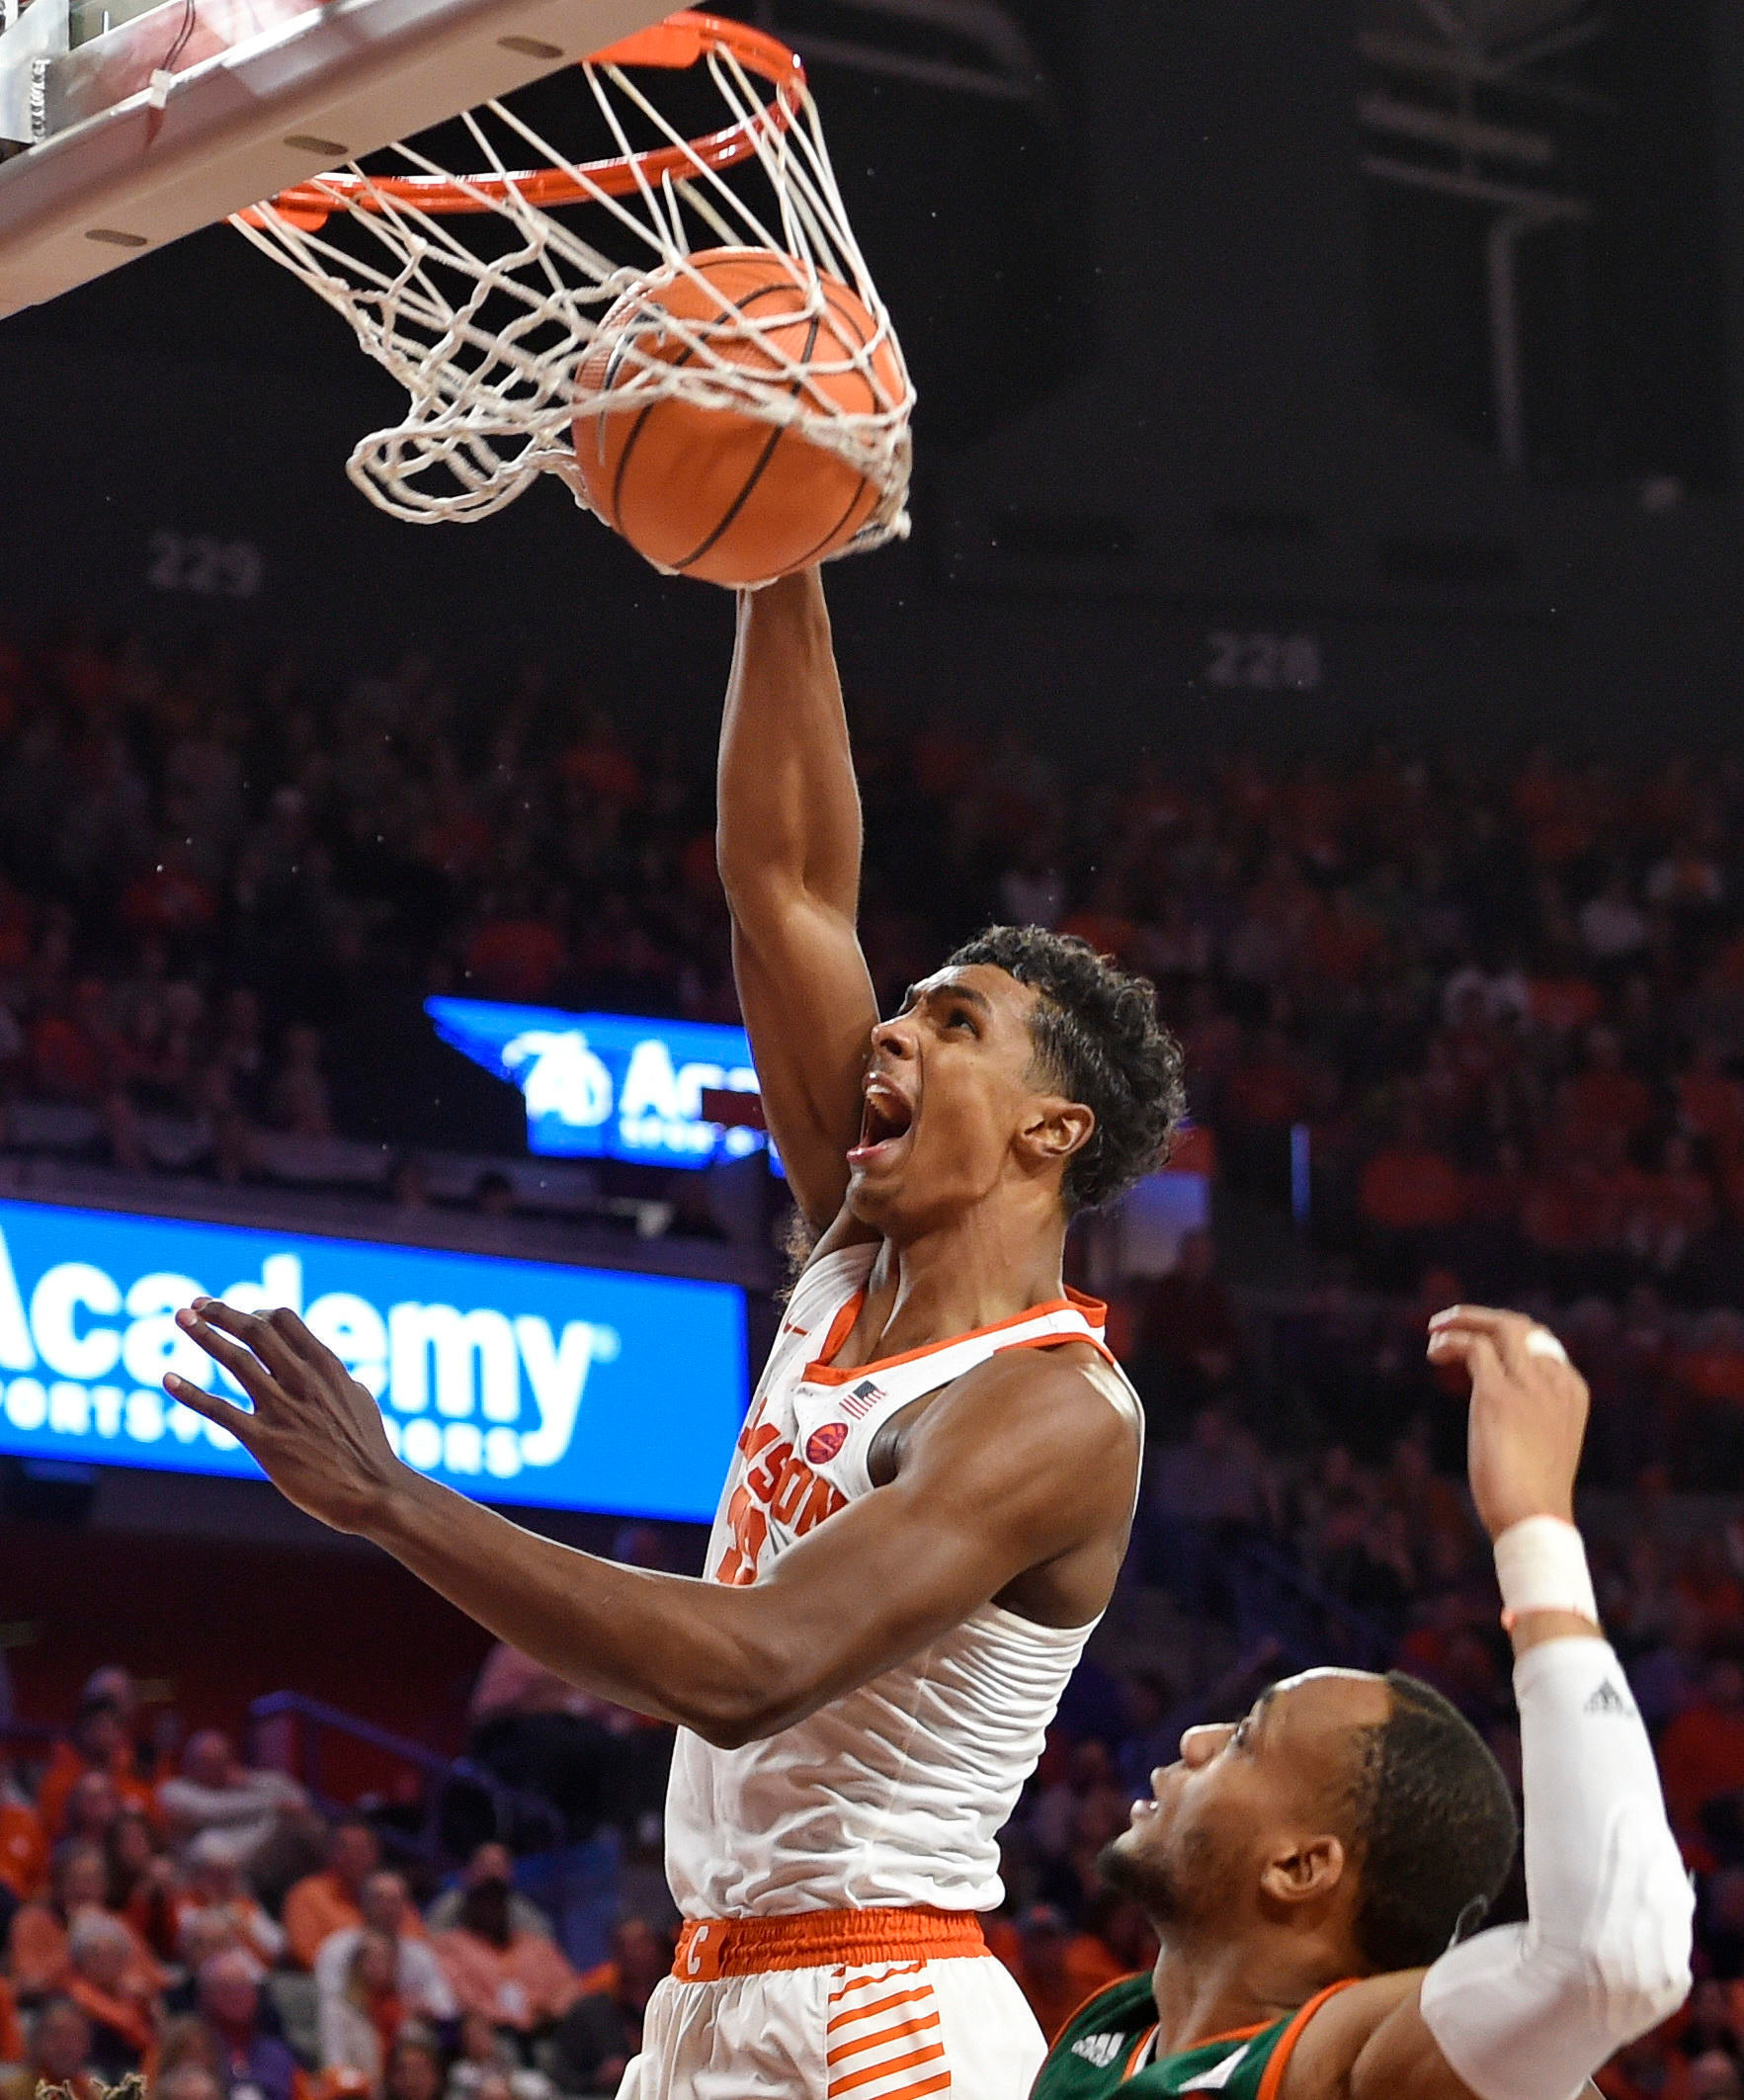 Clemson's Donte Grantham slams in a dunk in the Tigers' 72-63 victory over Miami on Saturday in Clemson. Clemson will take on North Carolina today in Chapel Hill, where a Clemson men's basketball team has never won a game.